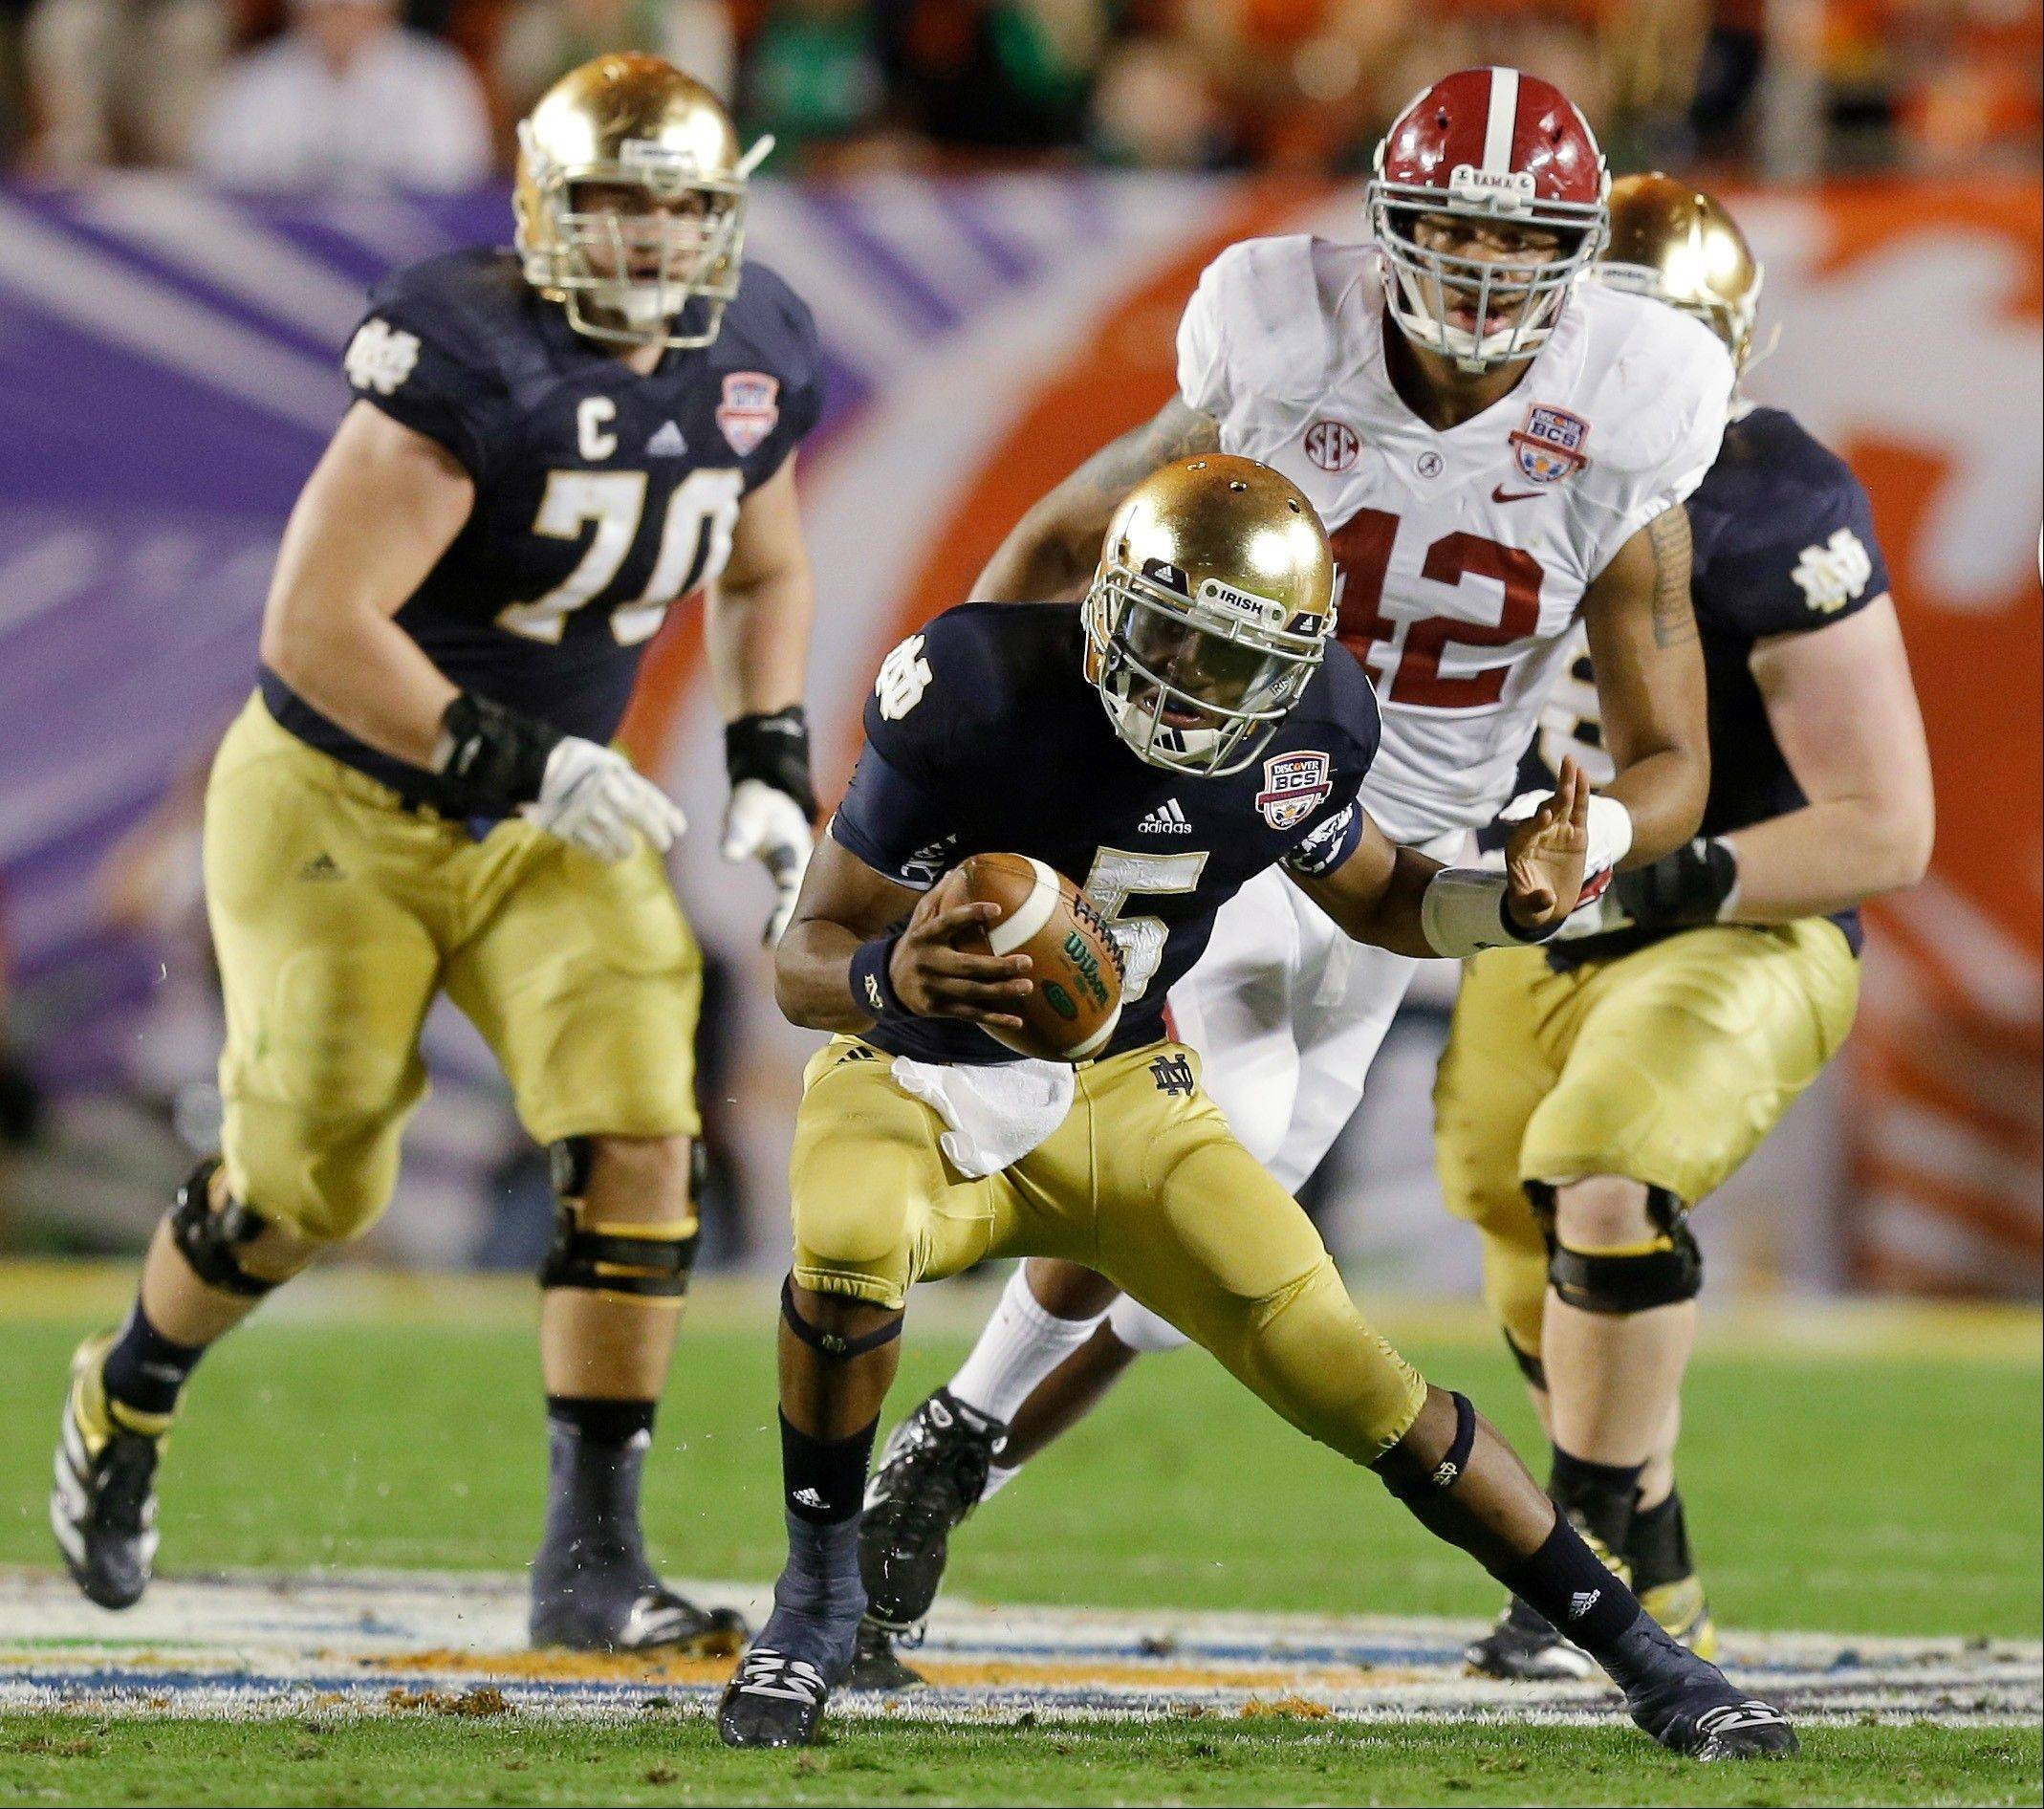 Notre Dame quarterback Everett Golson scrambles during the first half of Monday night's 42-14 loss to Alabama.